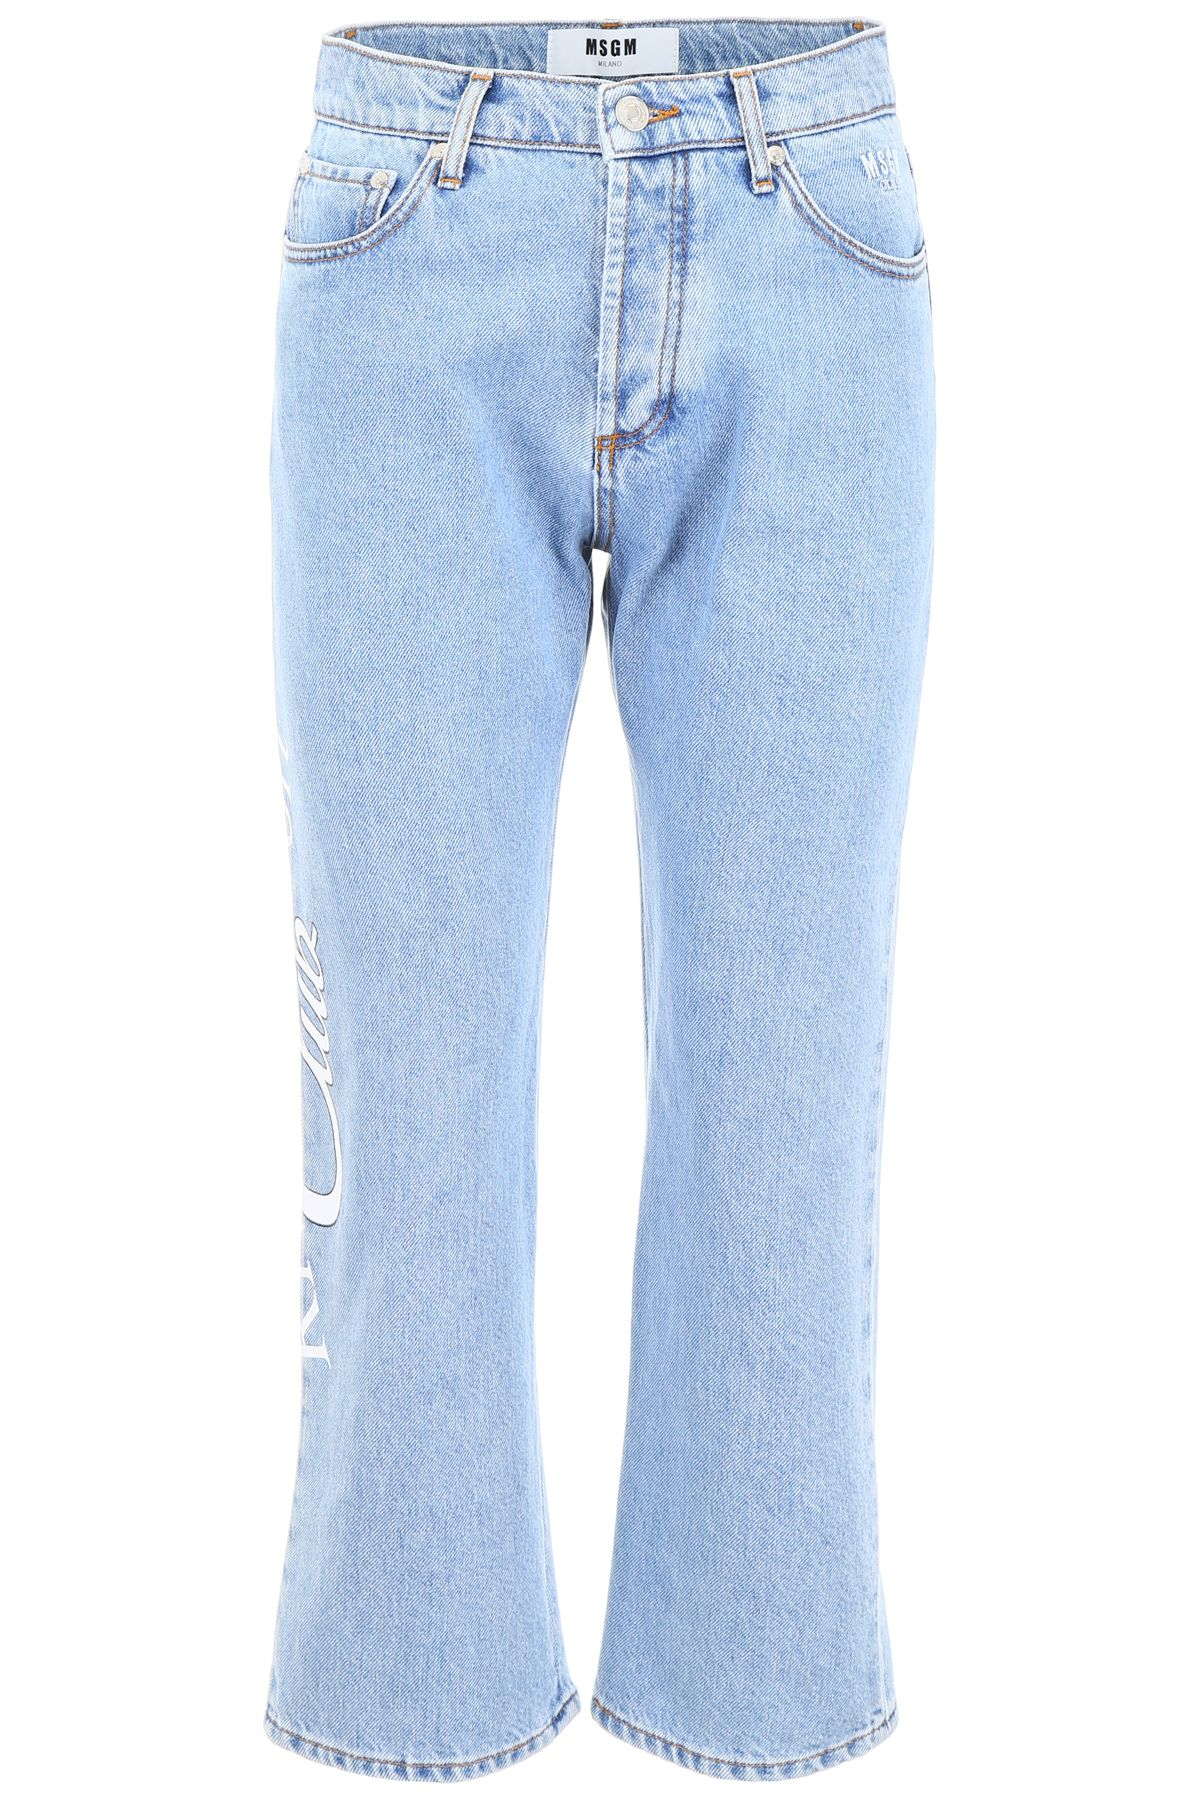 MSGM Riviera Resort Club Jeans